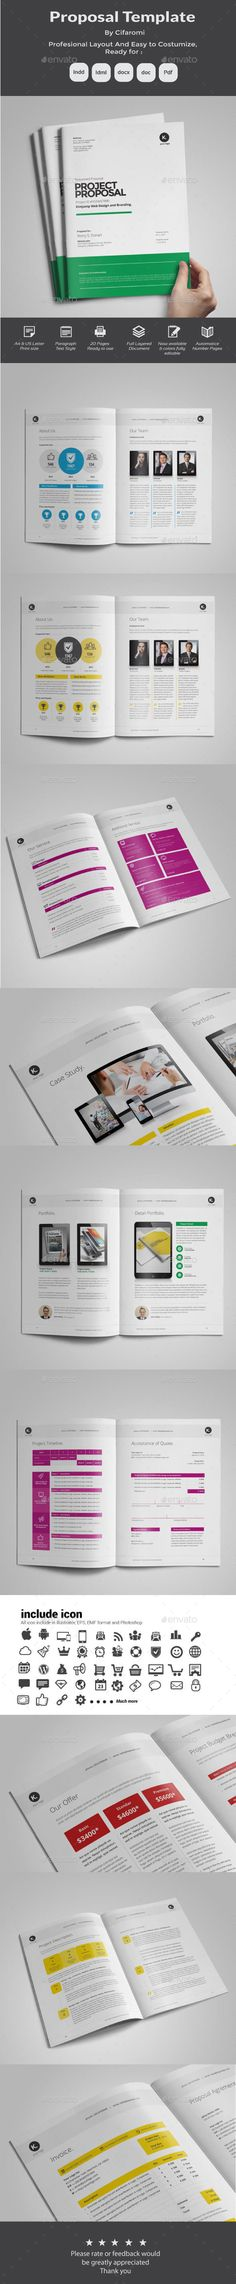 100 Pages Bundle Full Proposal Packages A4